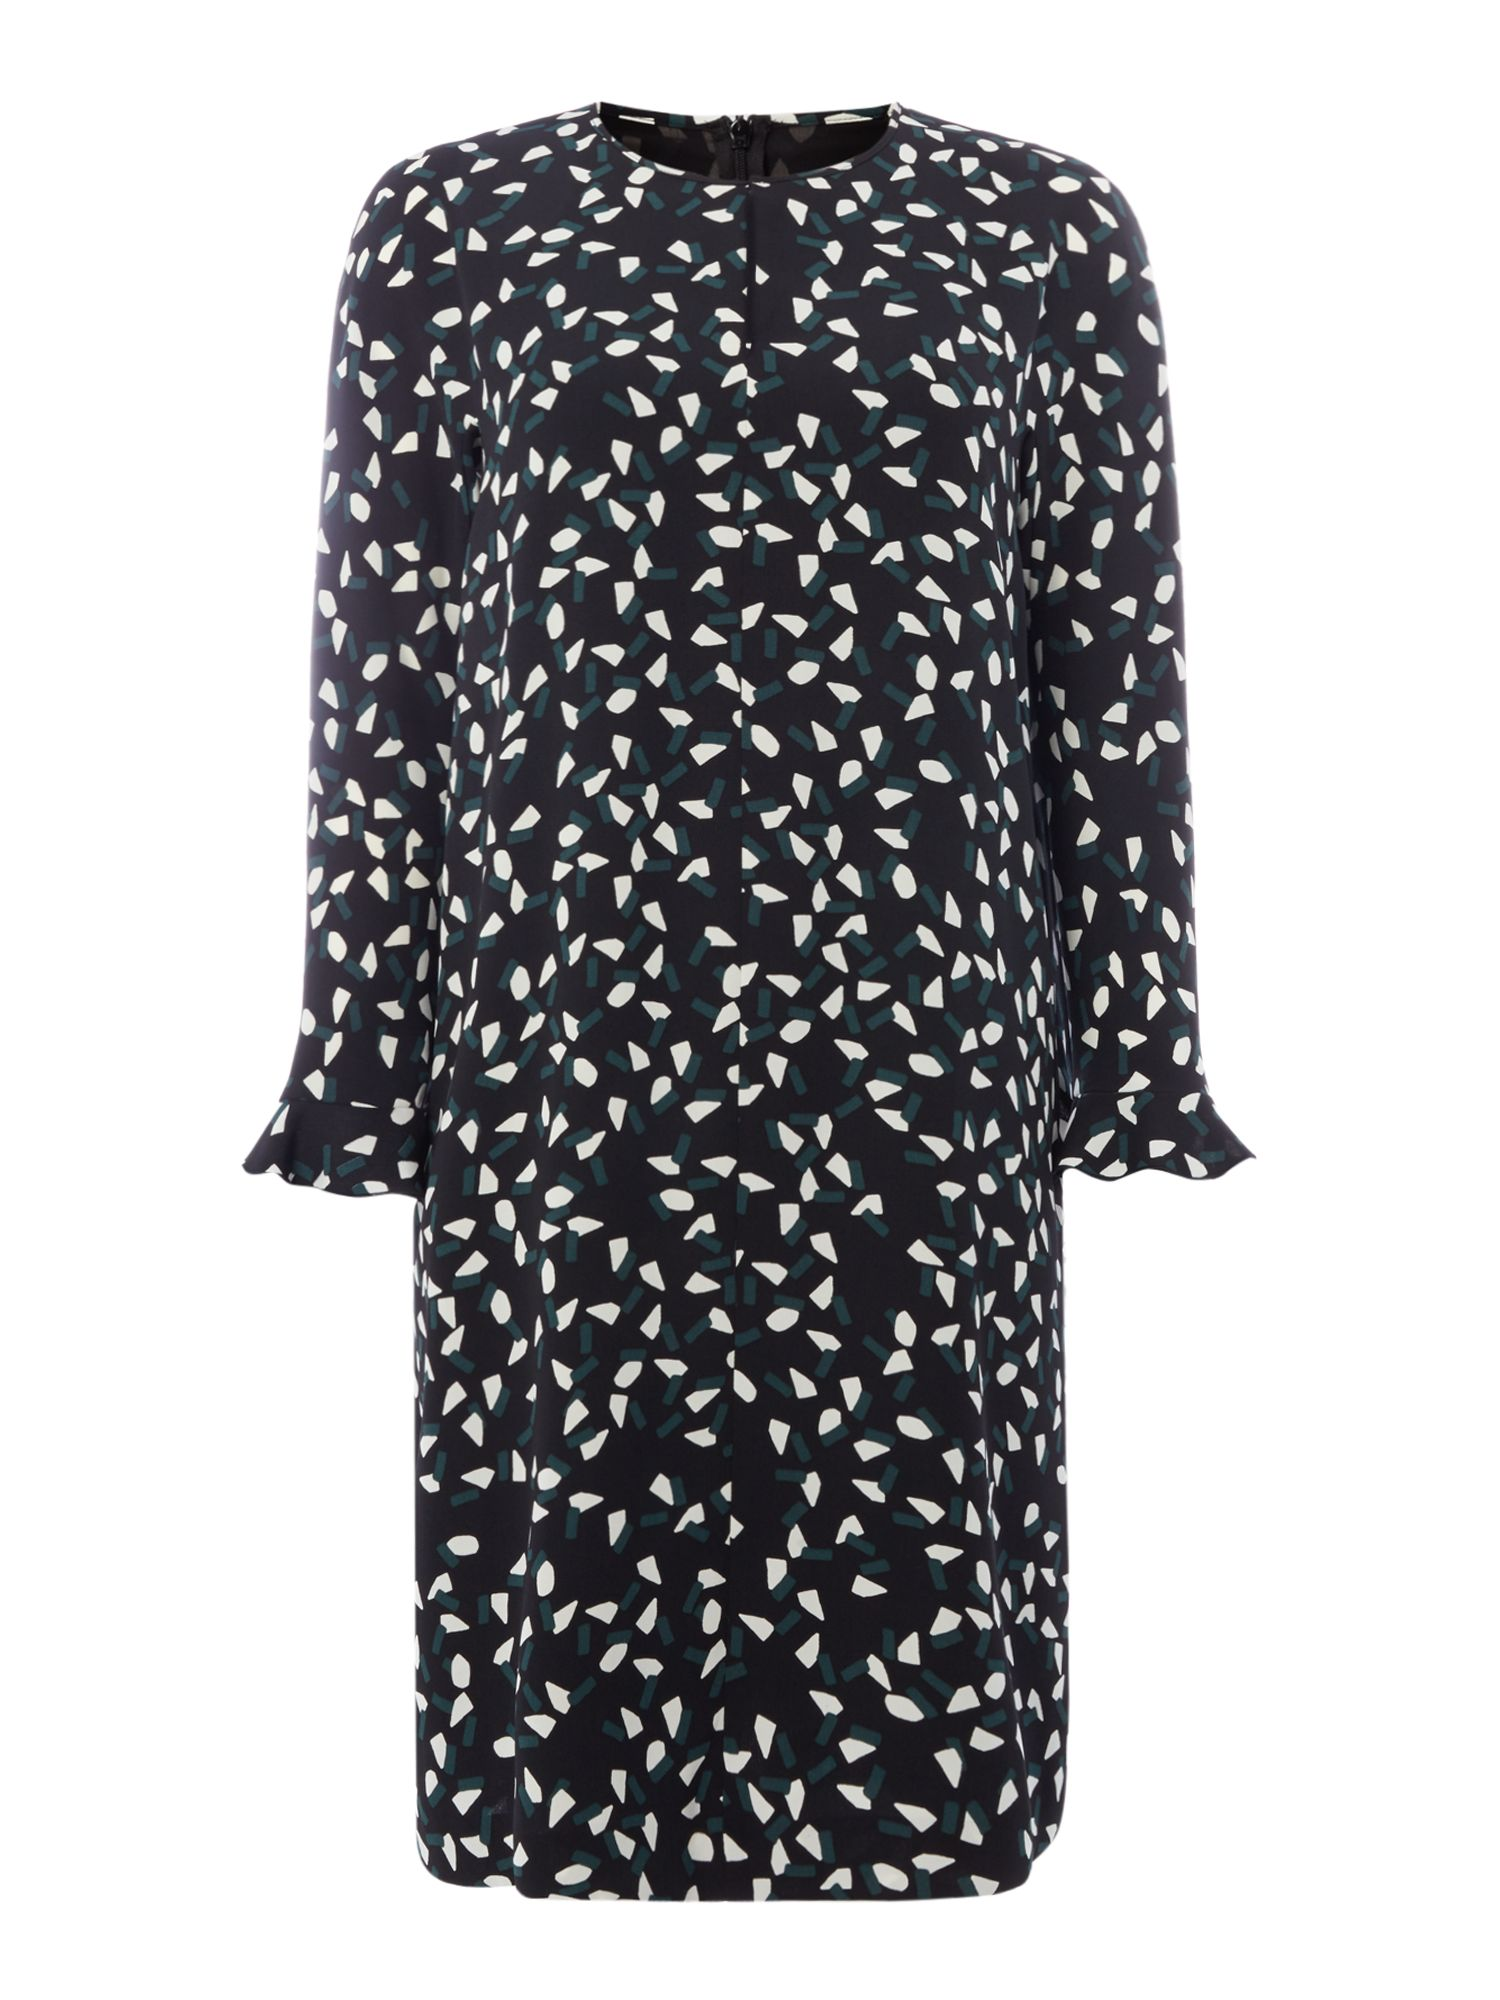 Max Mara Studio Fagus printed dress with ruffle cuff, Black